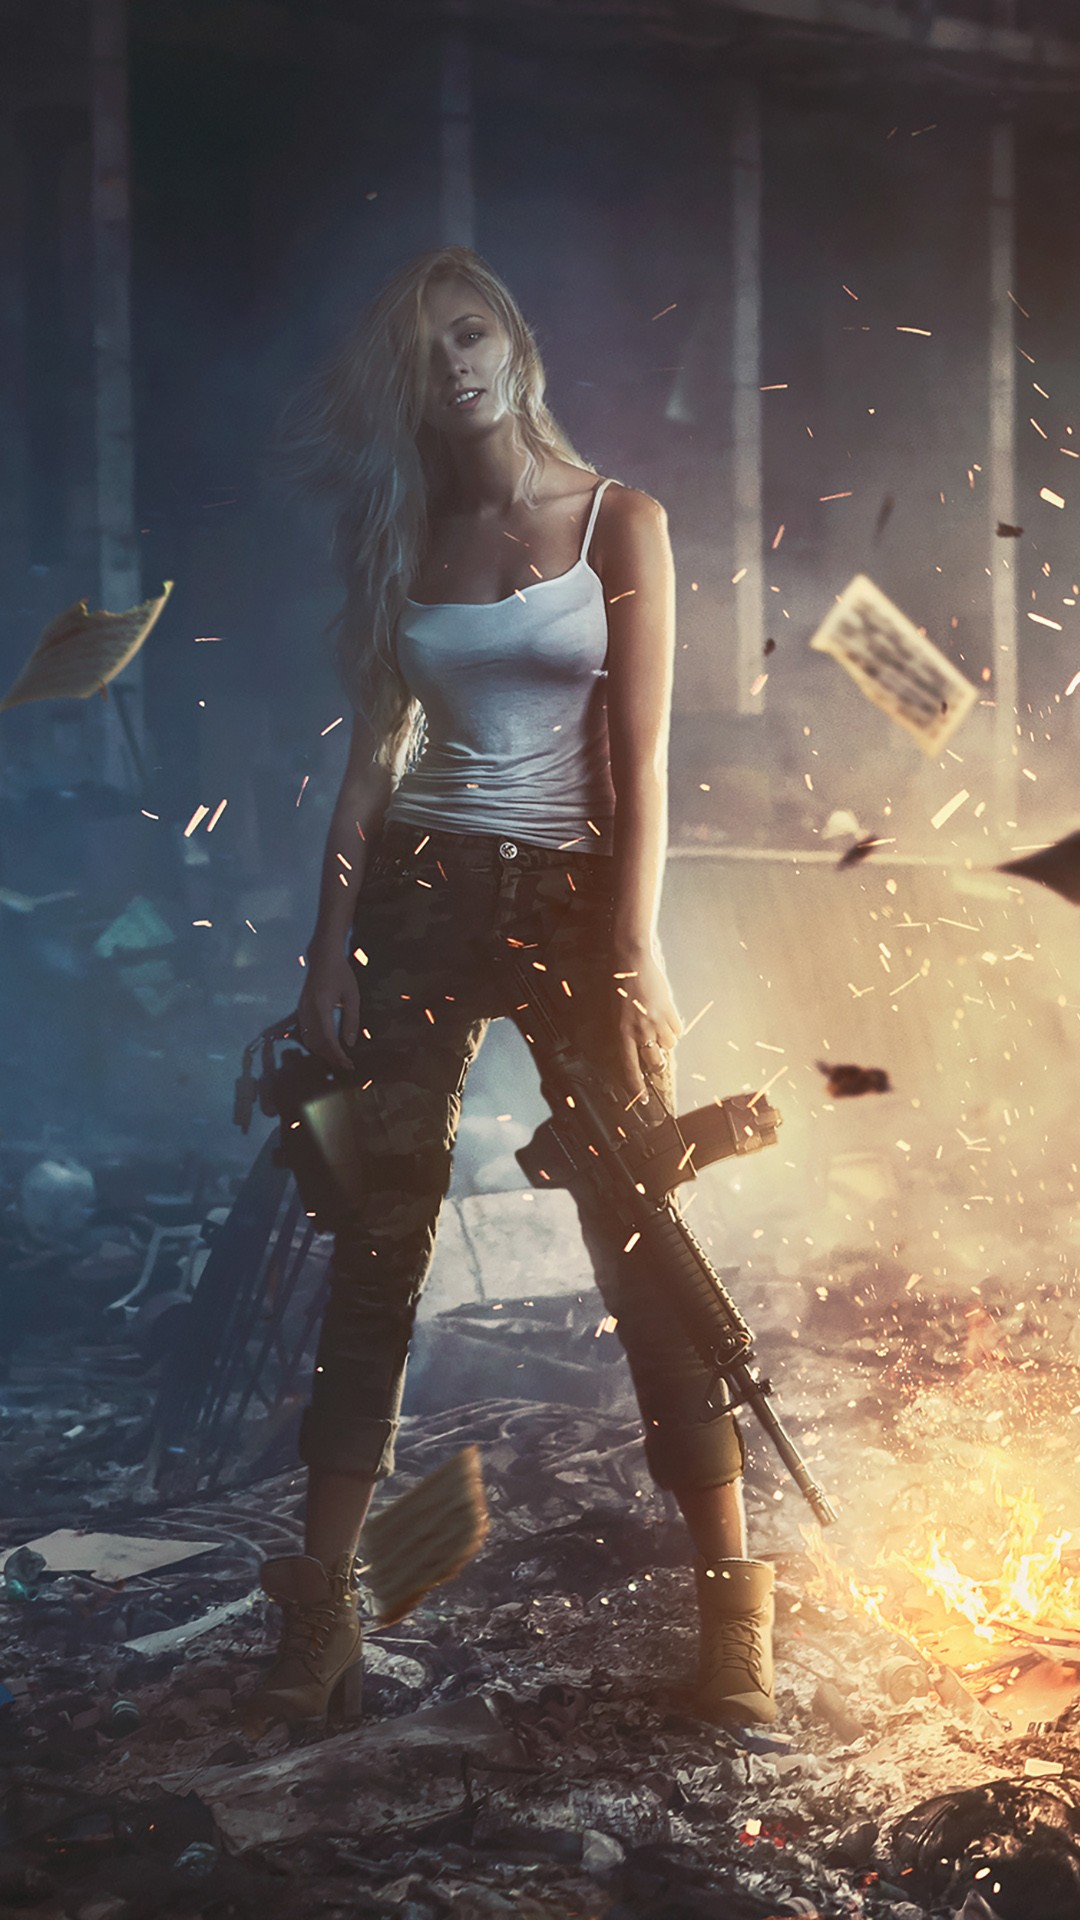 Cute Girly Iphone 6 Wallpaper Girl With Gun Wallpapers Hd Wallpapers Id 25653